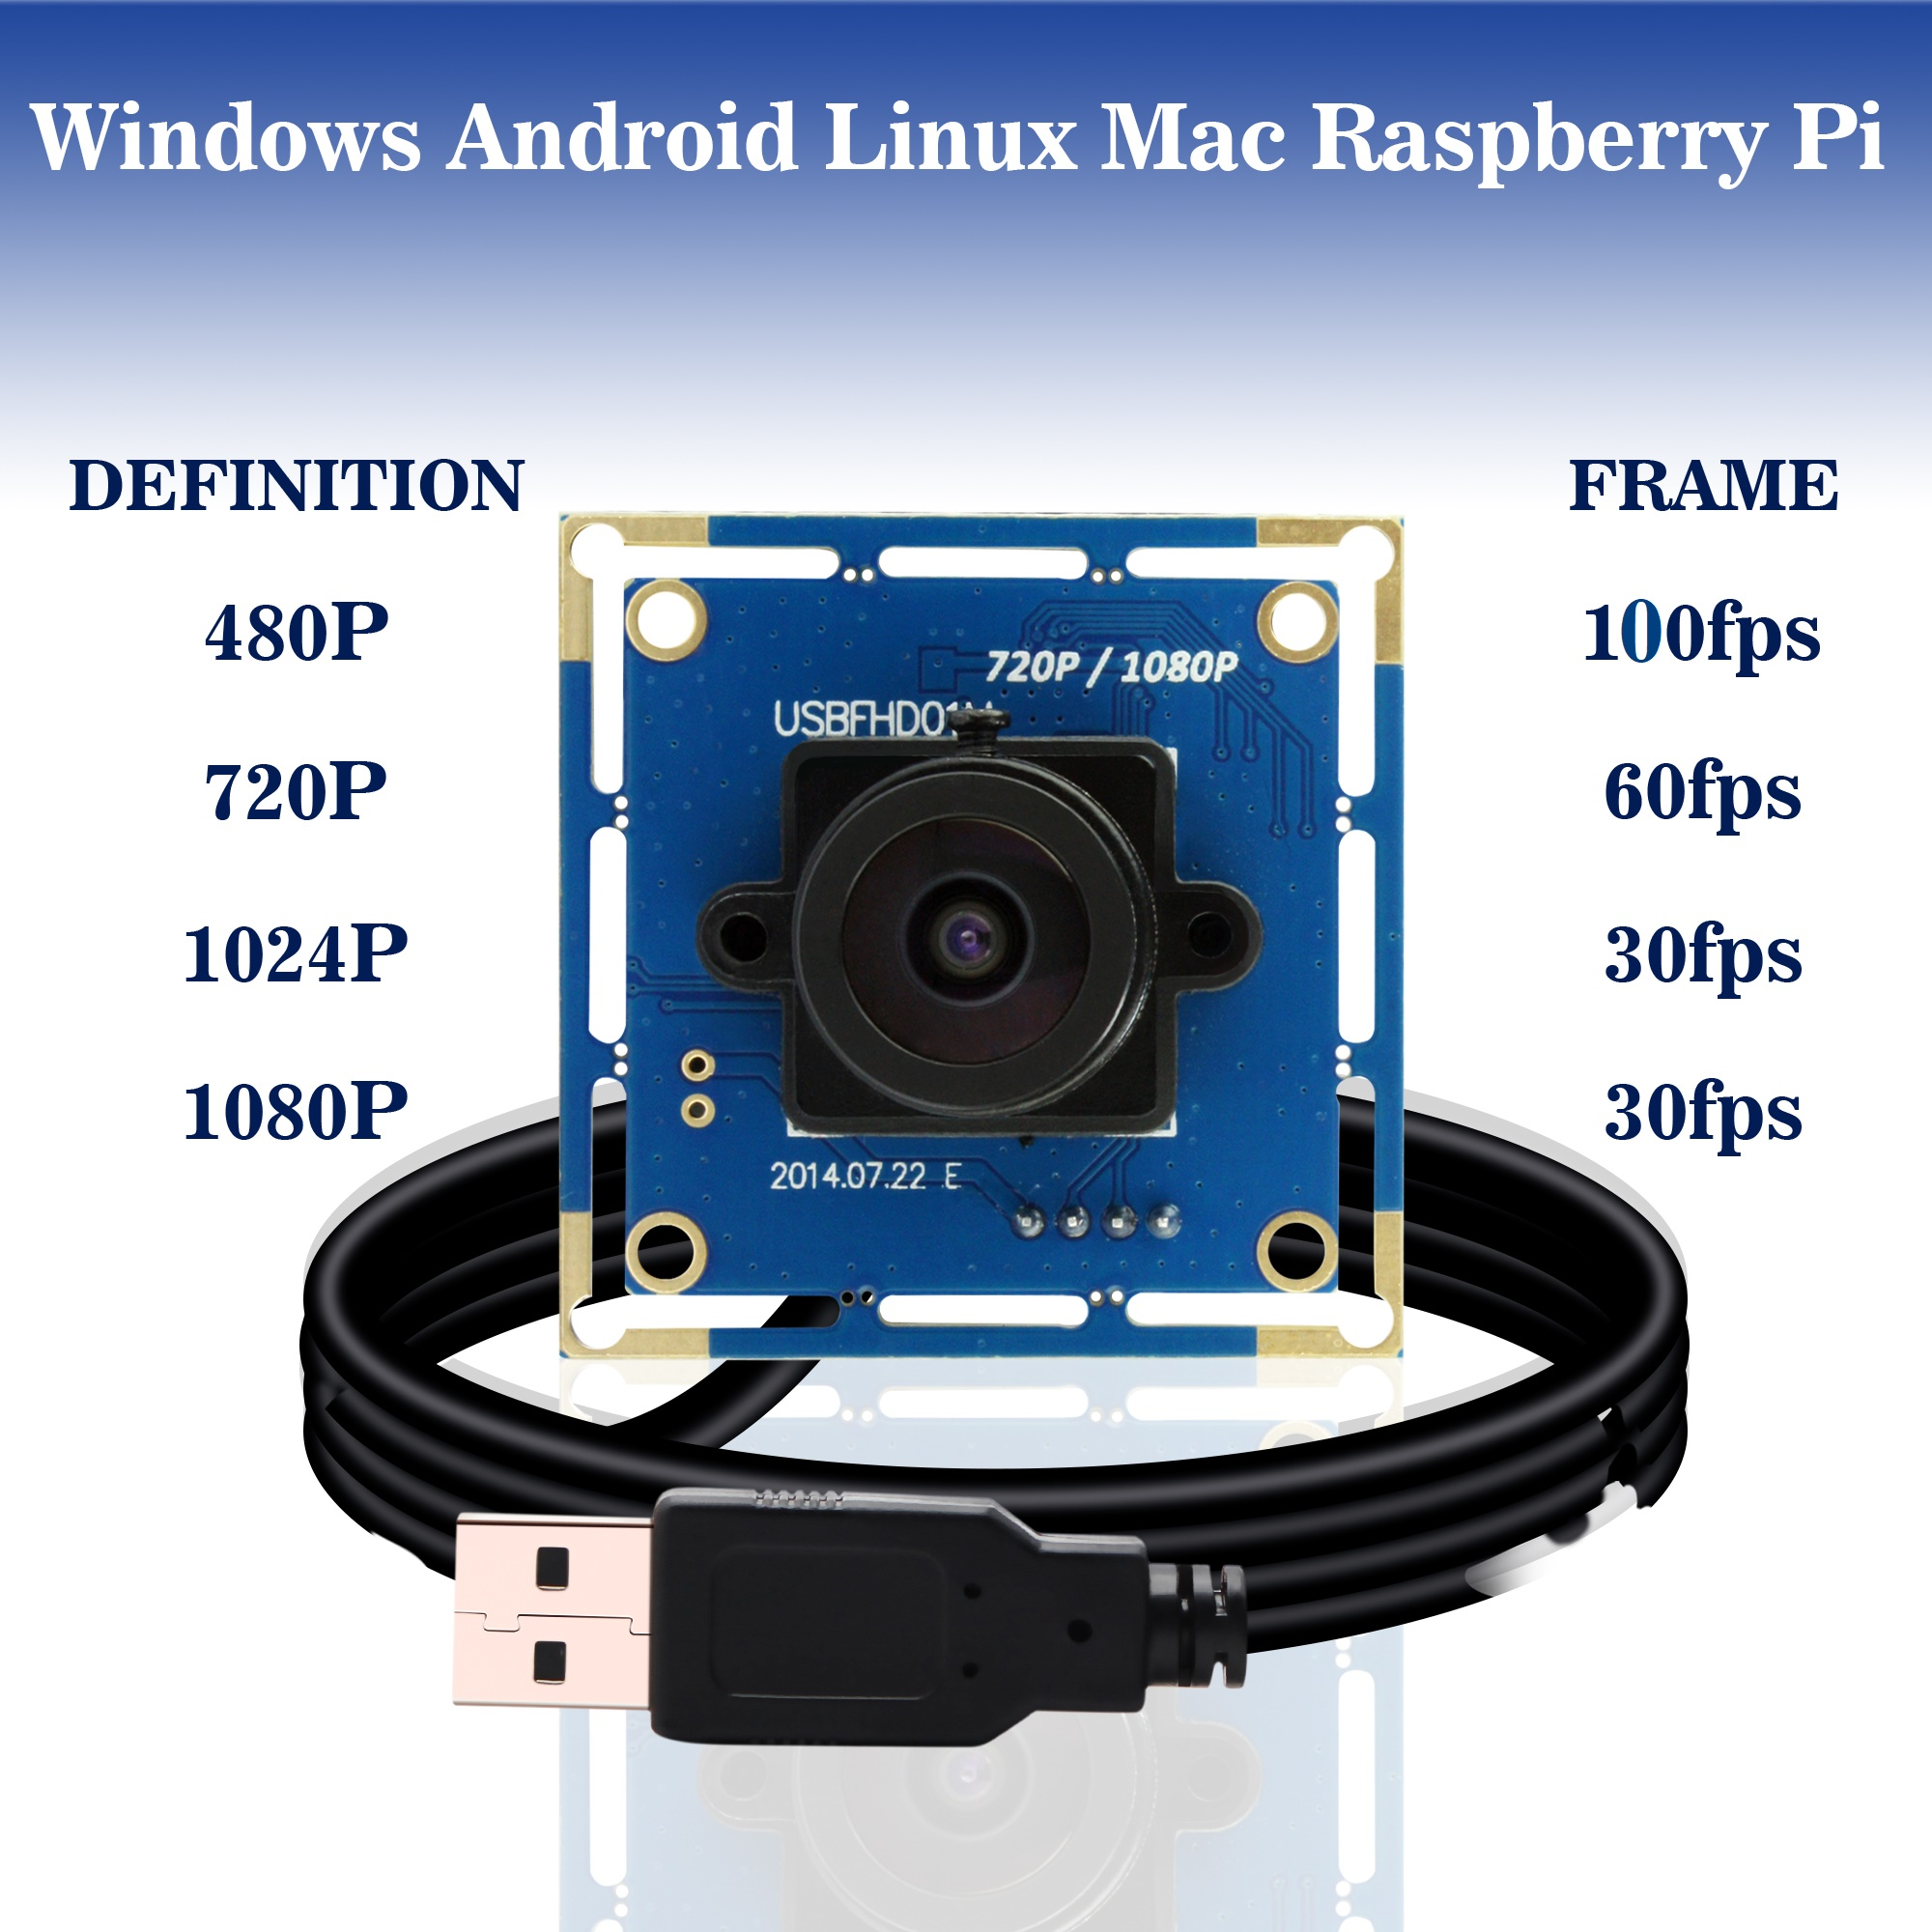 1080p Full Hd MJPEG 30fps/60fps/100fps High Speed CMOS OV2710 Wide Angle Mini CCTV Android Linux  UVC Webcam Usb Camera Module